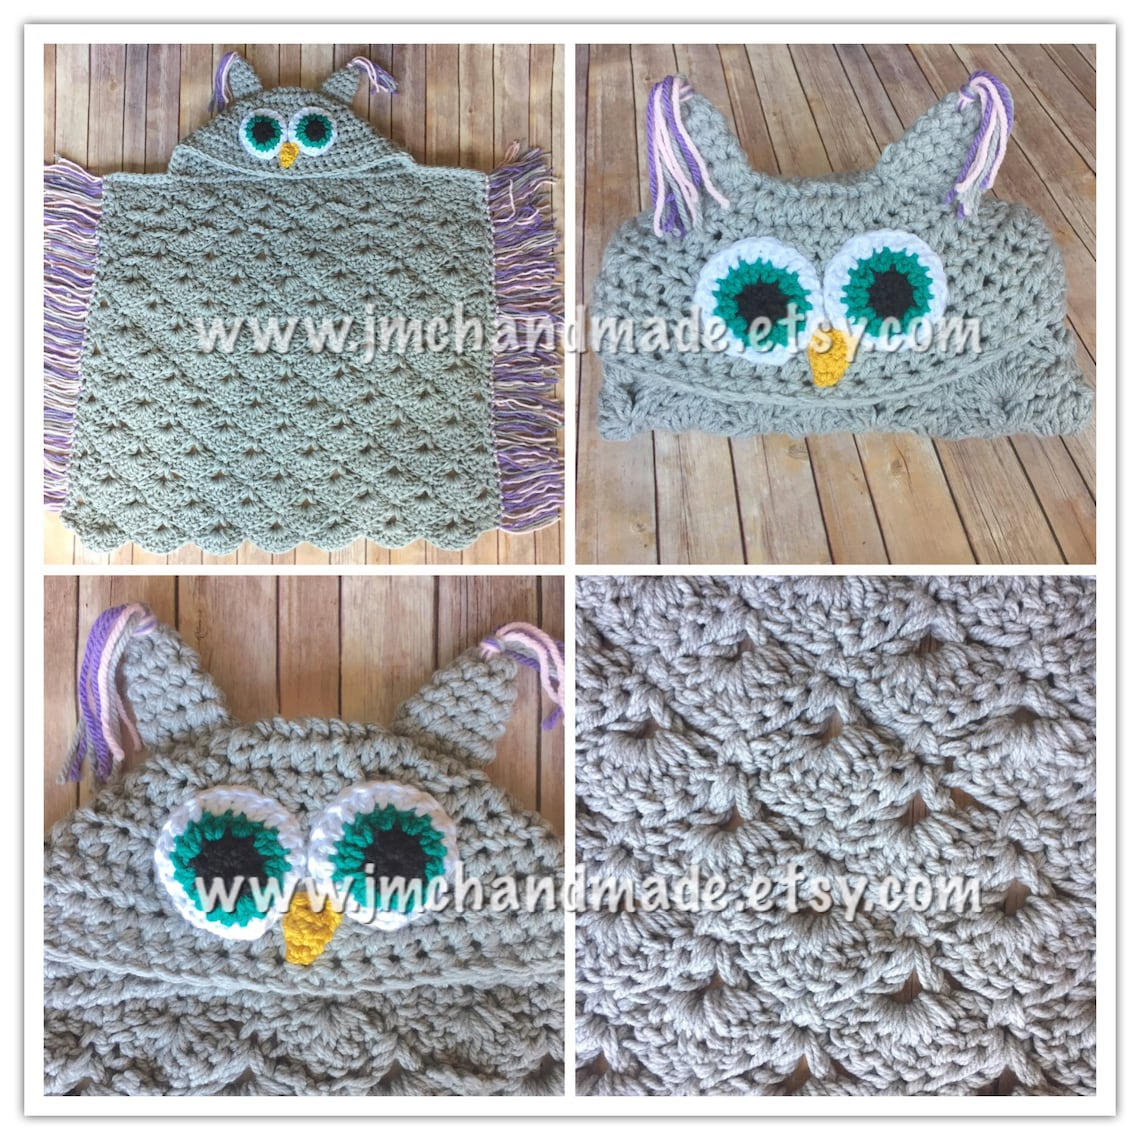 Crochet Owl Blanket Owl Hooded Blanket Adult Owl Blanket Etsy